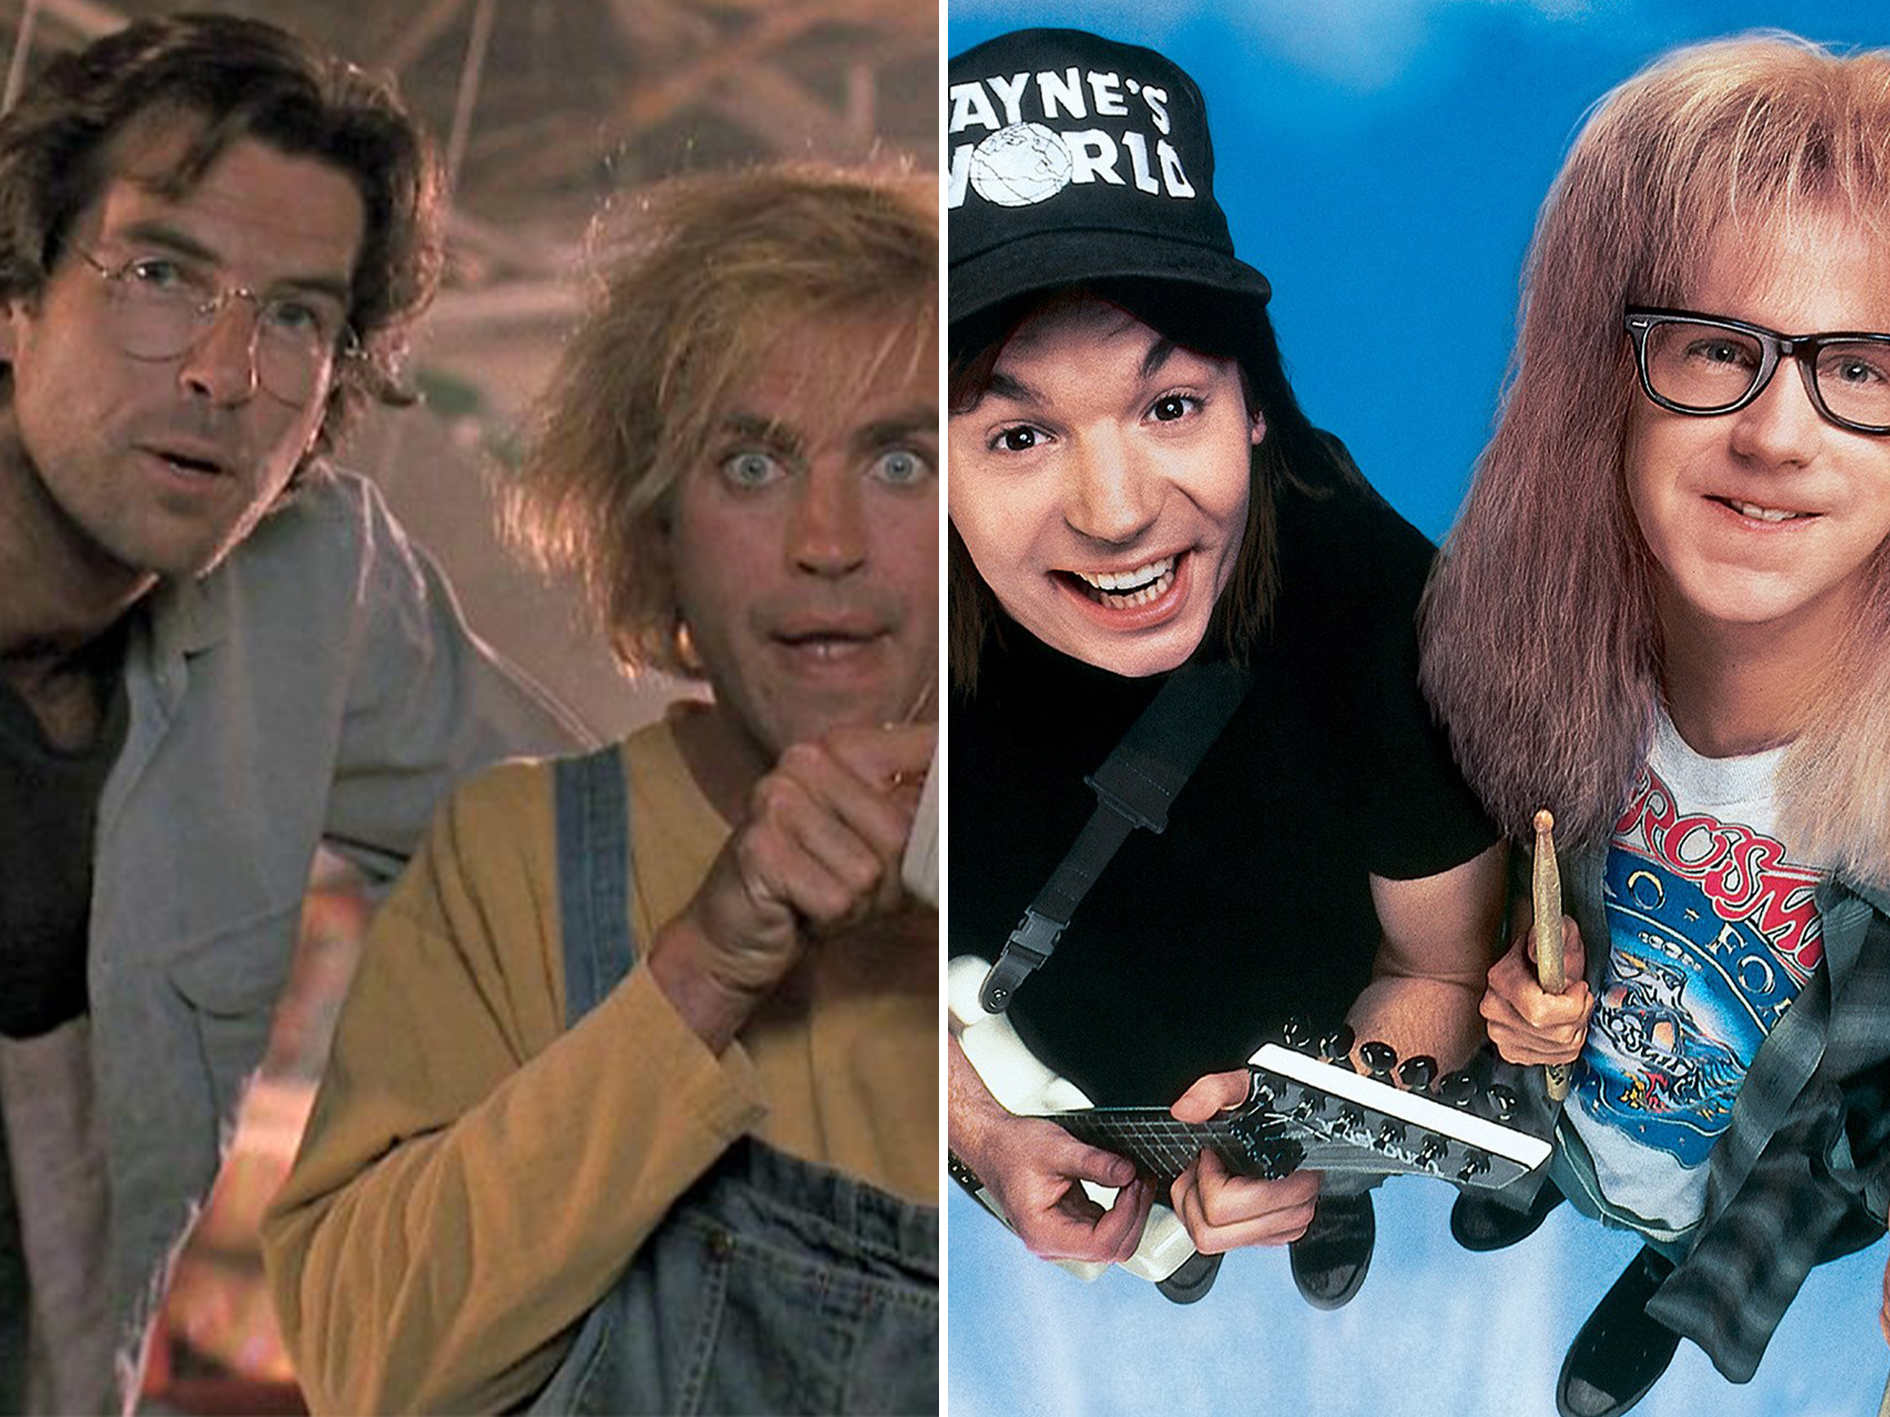 Lawnmower Man Waynes World 10 Mind-Altering Facts You Never Knew About The Lawnmower Man